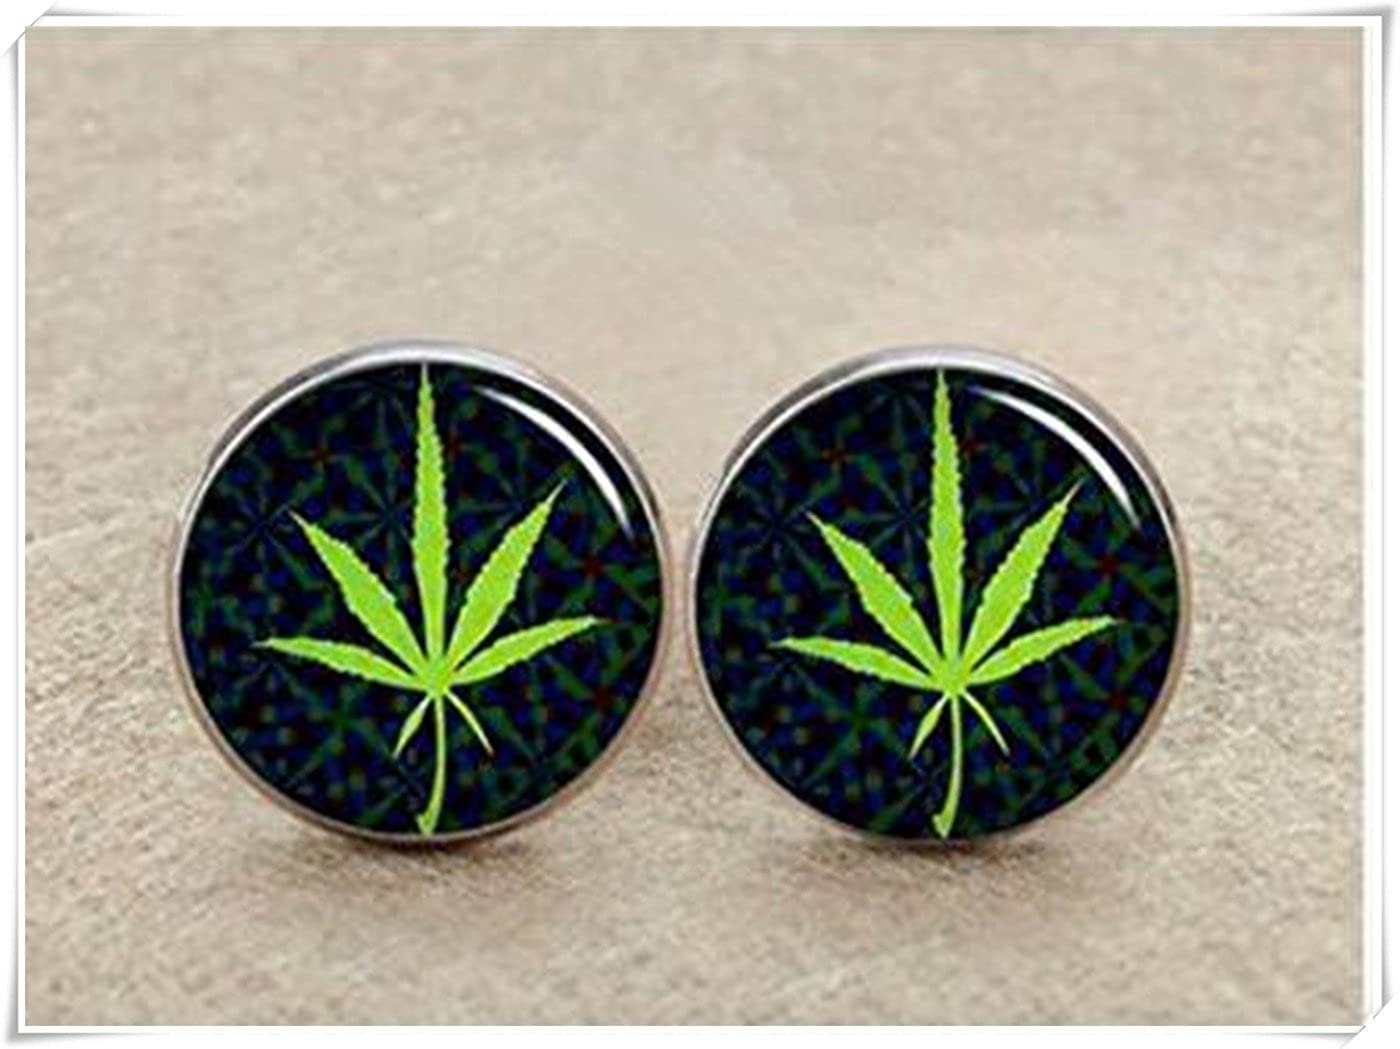 Rasta Cannabis Leaf Cufflinks,image cufflinks,mens cufflinks CX28